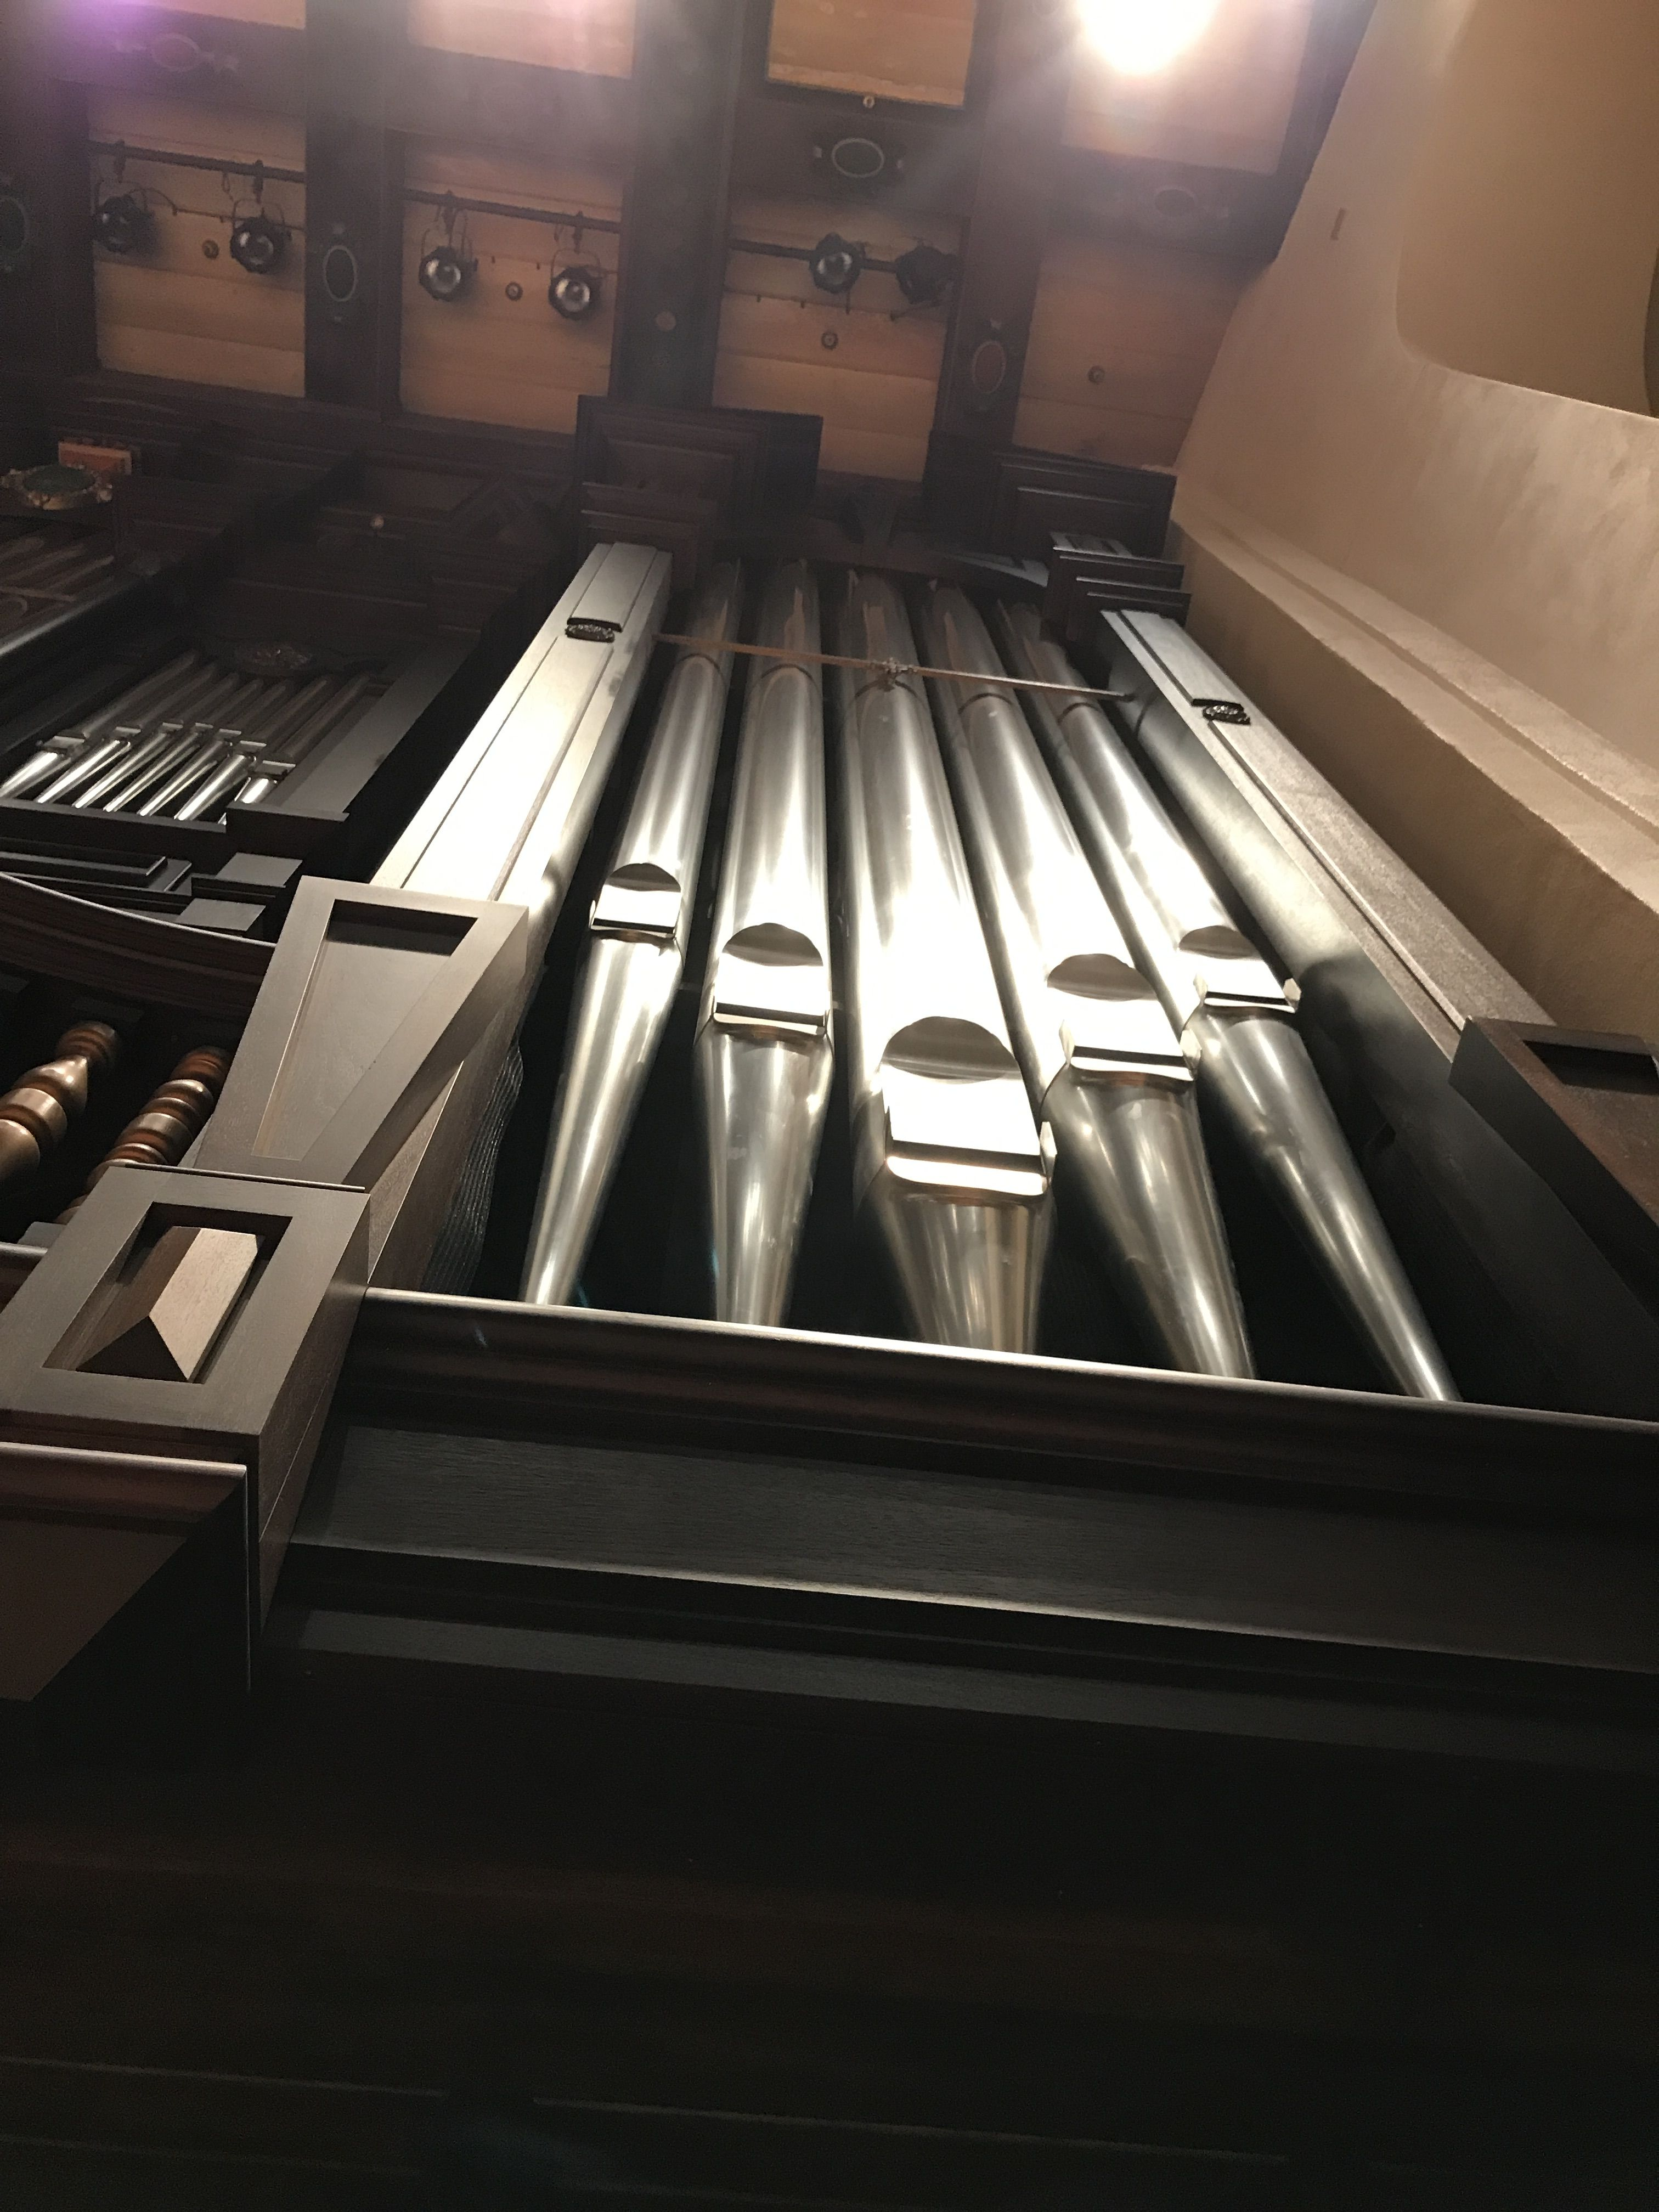 Organ pipes in music hall. Royalty free. Permission